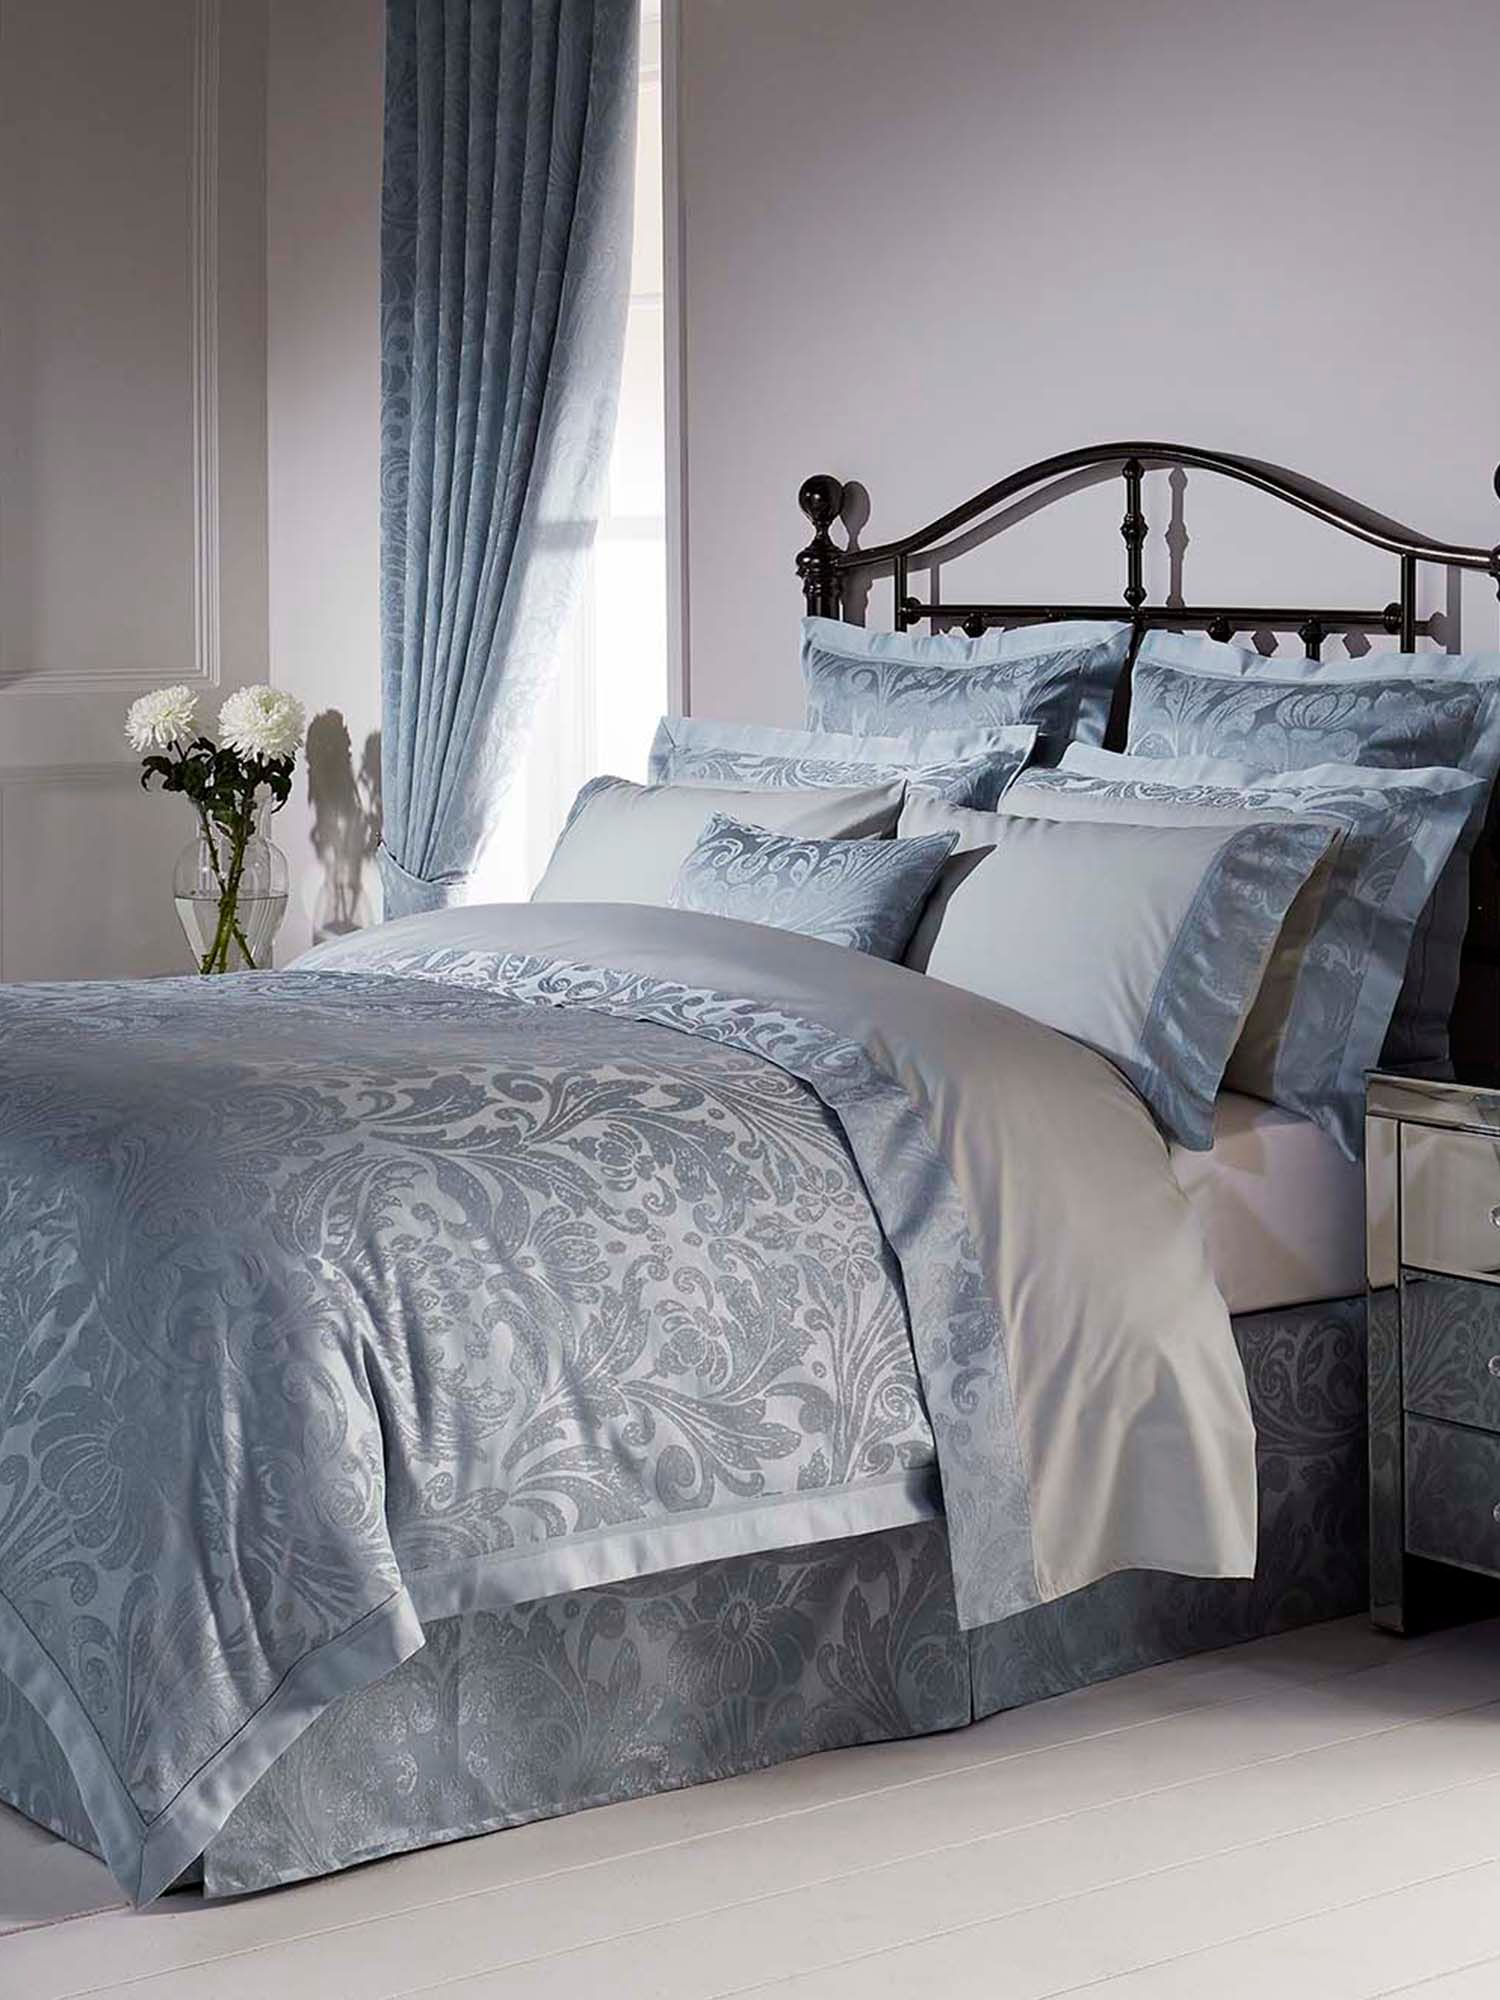 Marianne king duvet teal